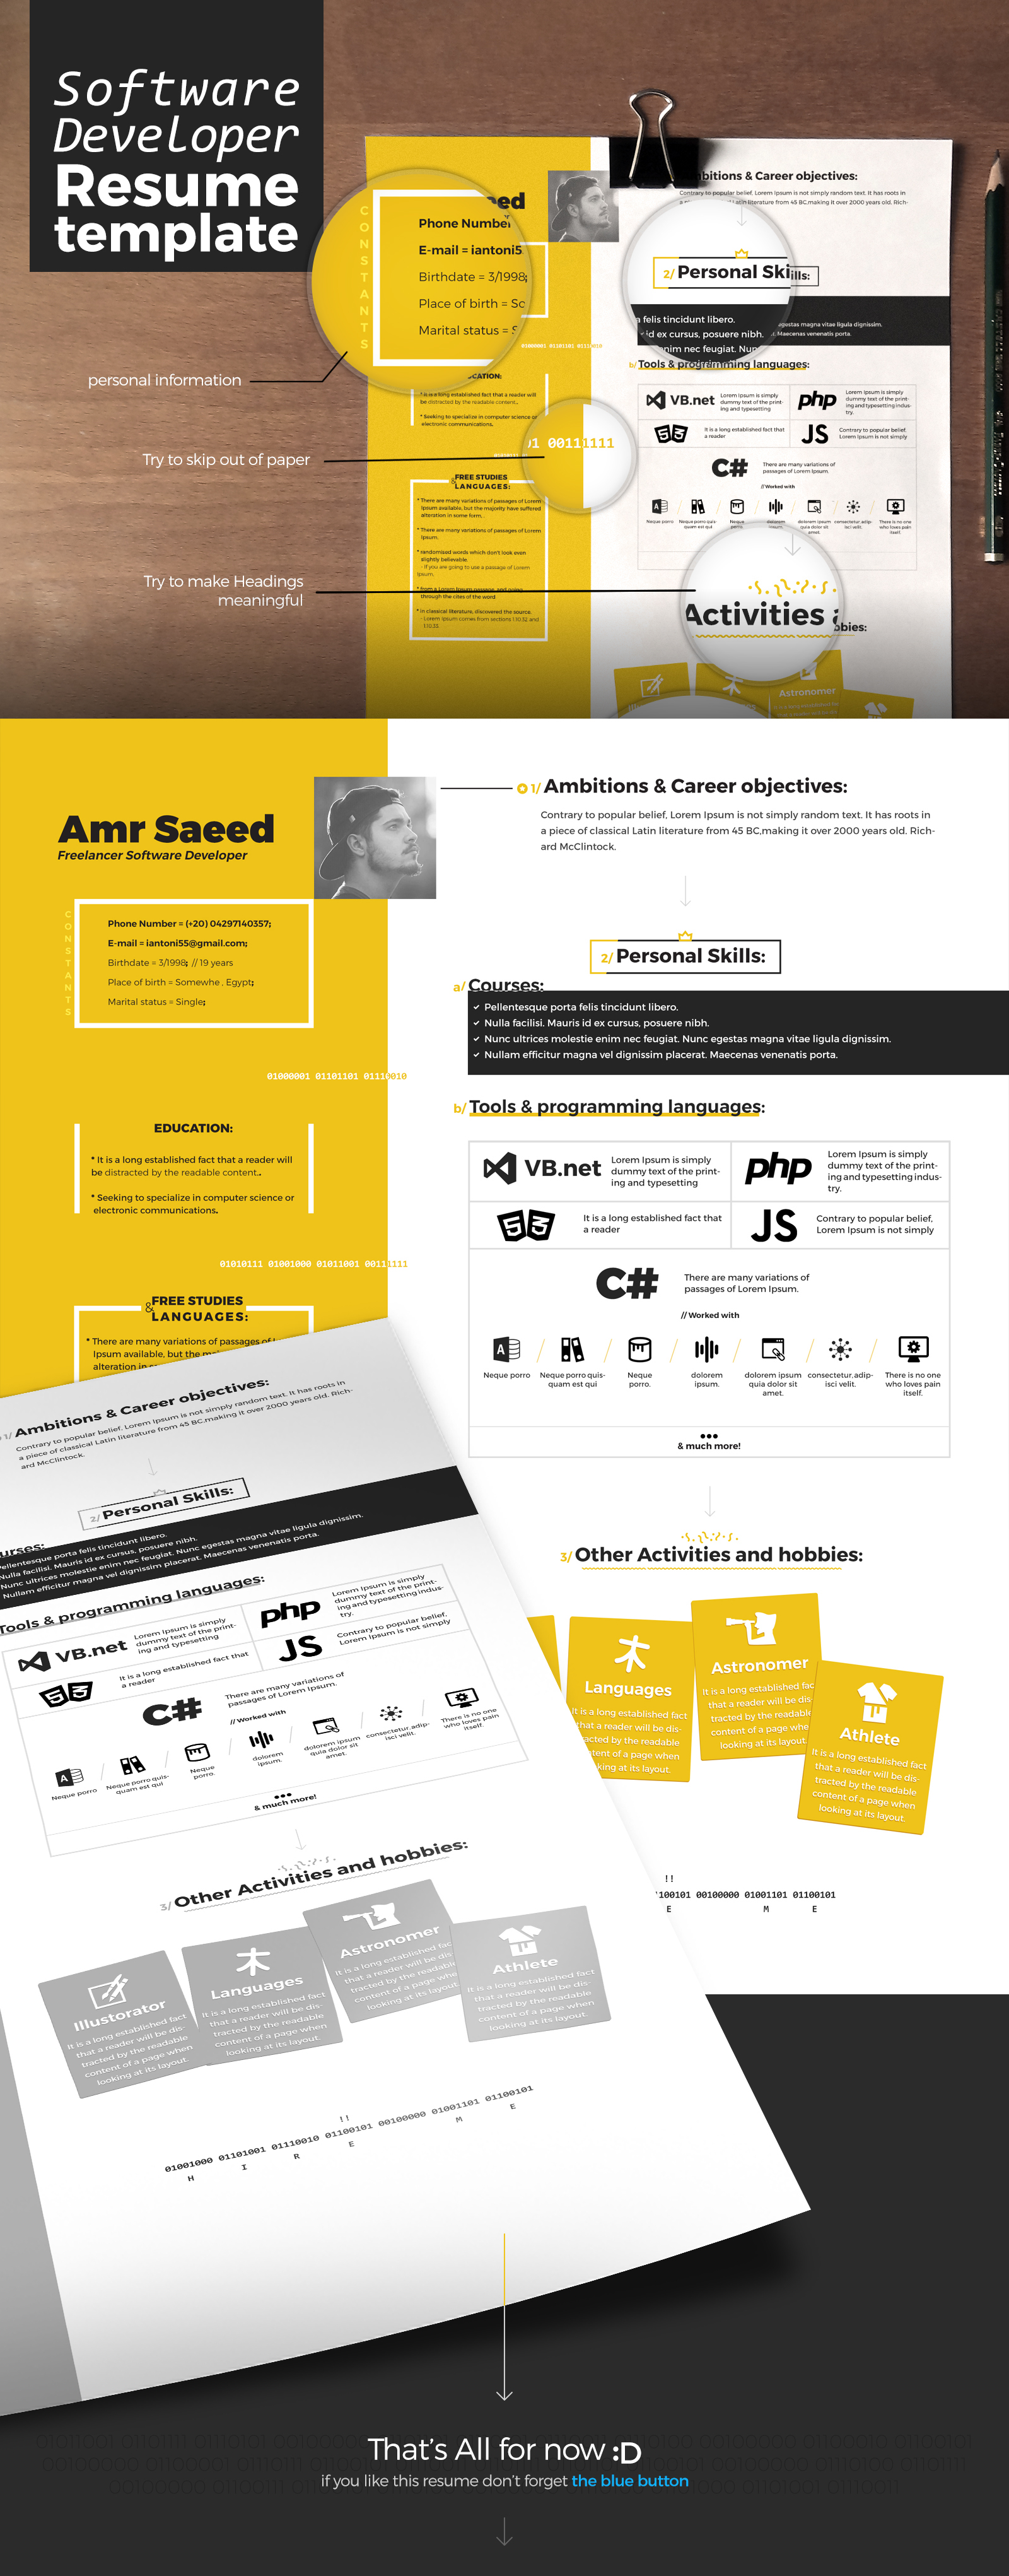 resume template for a software developer on behance